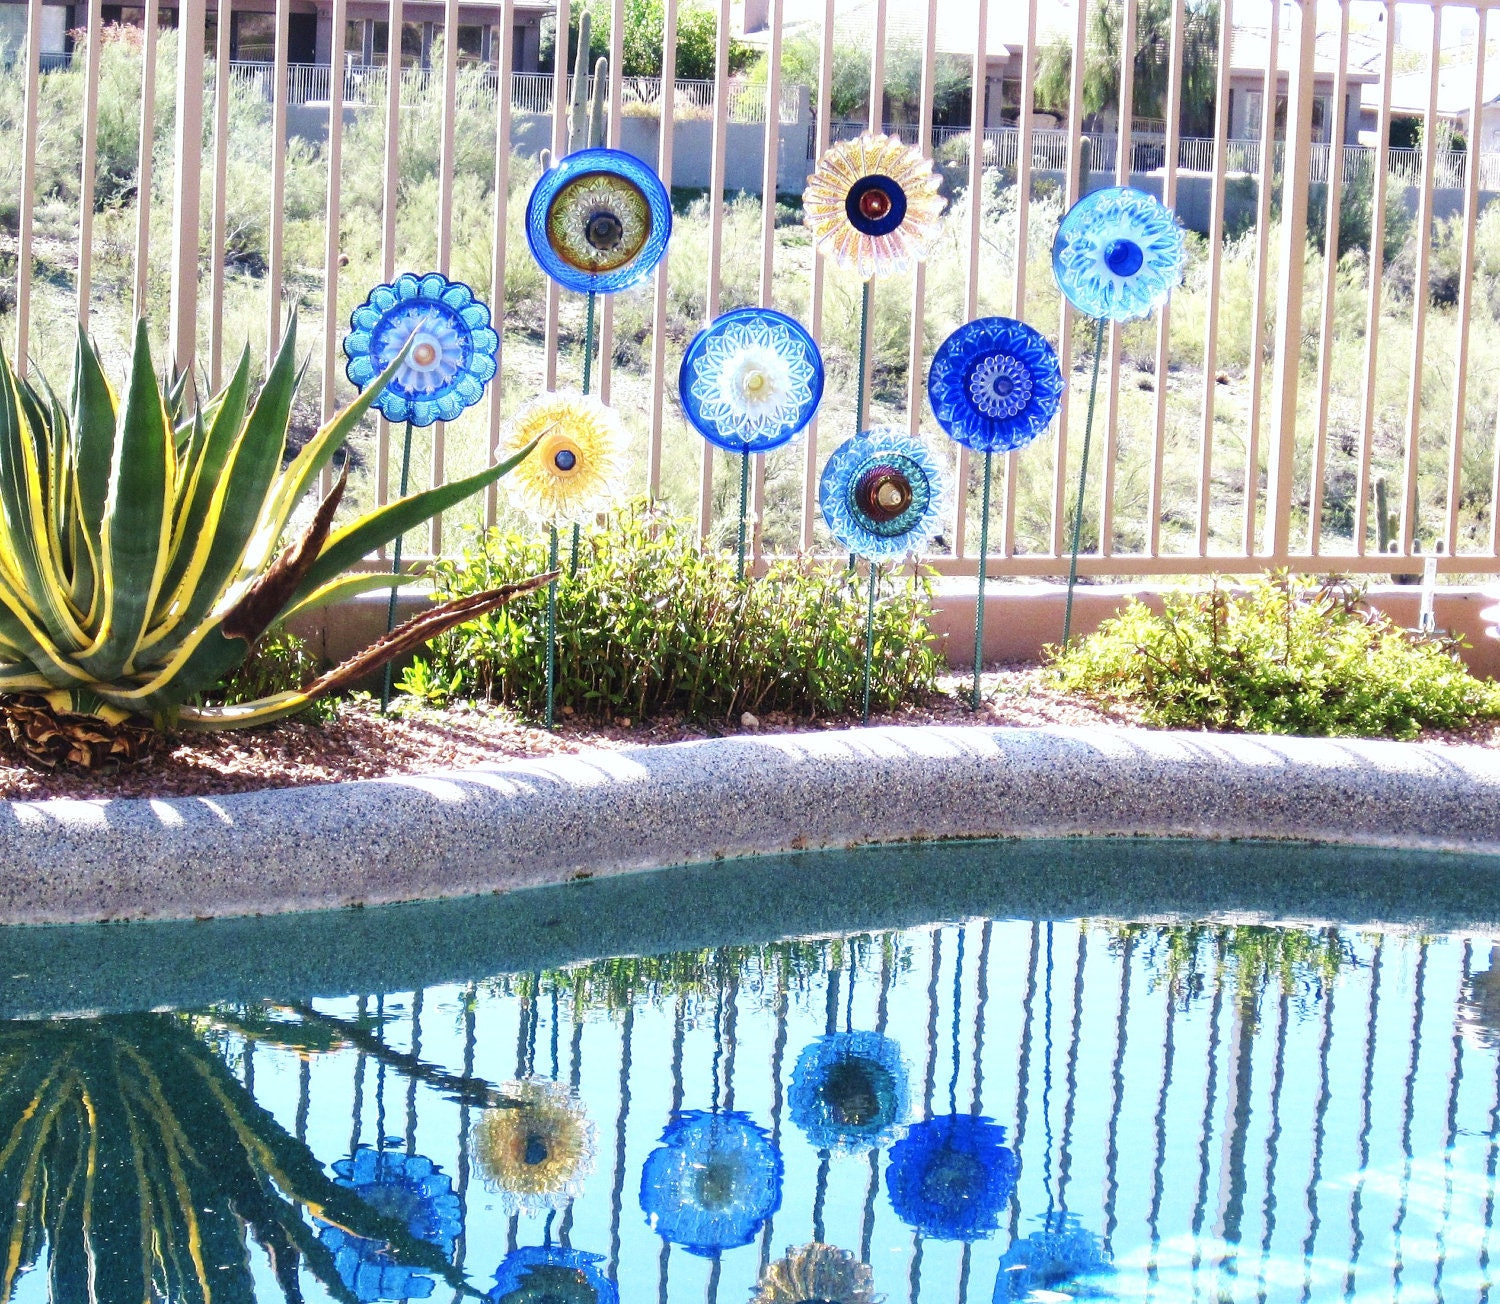 recycled glass garden whimsy yard art outdoor decor upcycled, Garden idea